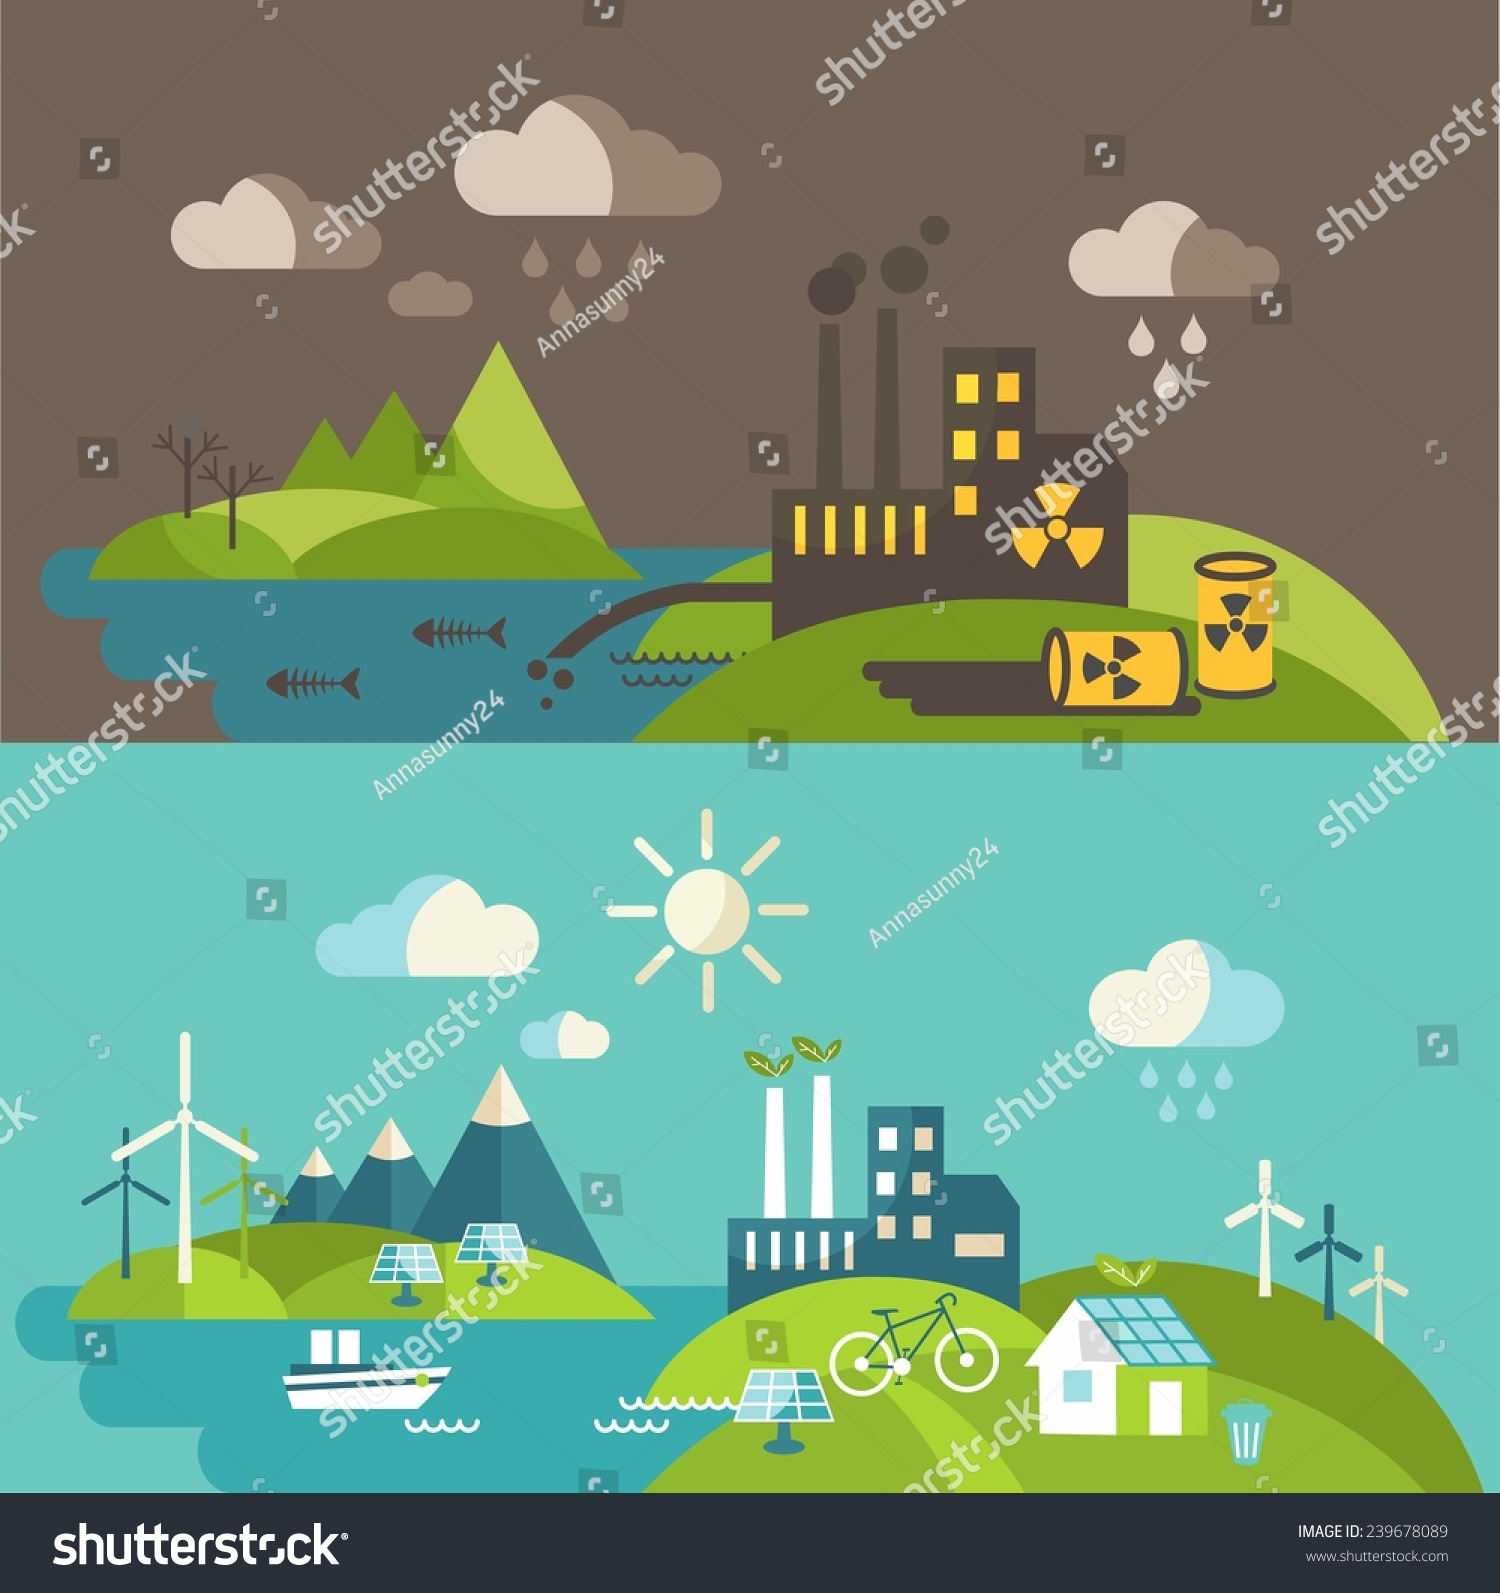 Nature Ecology: Panoramic Landscape Ecology Concept Concept Pollution